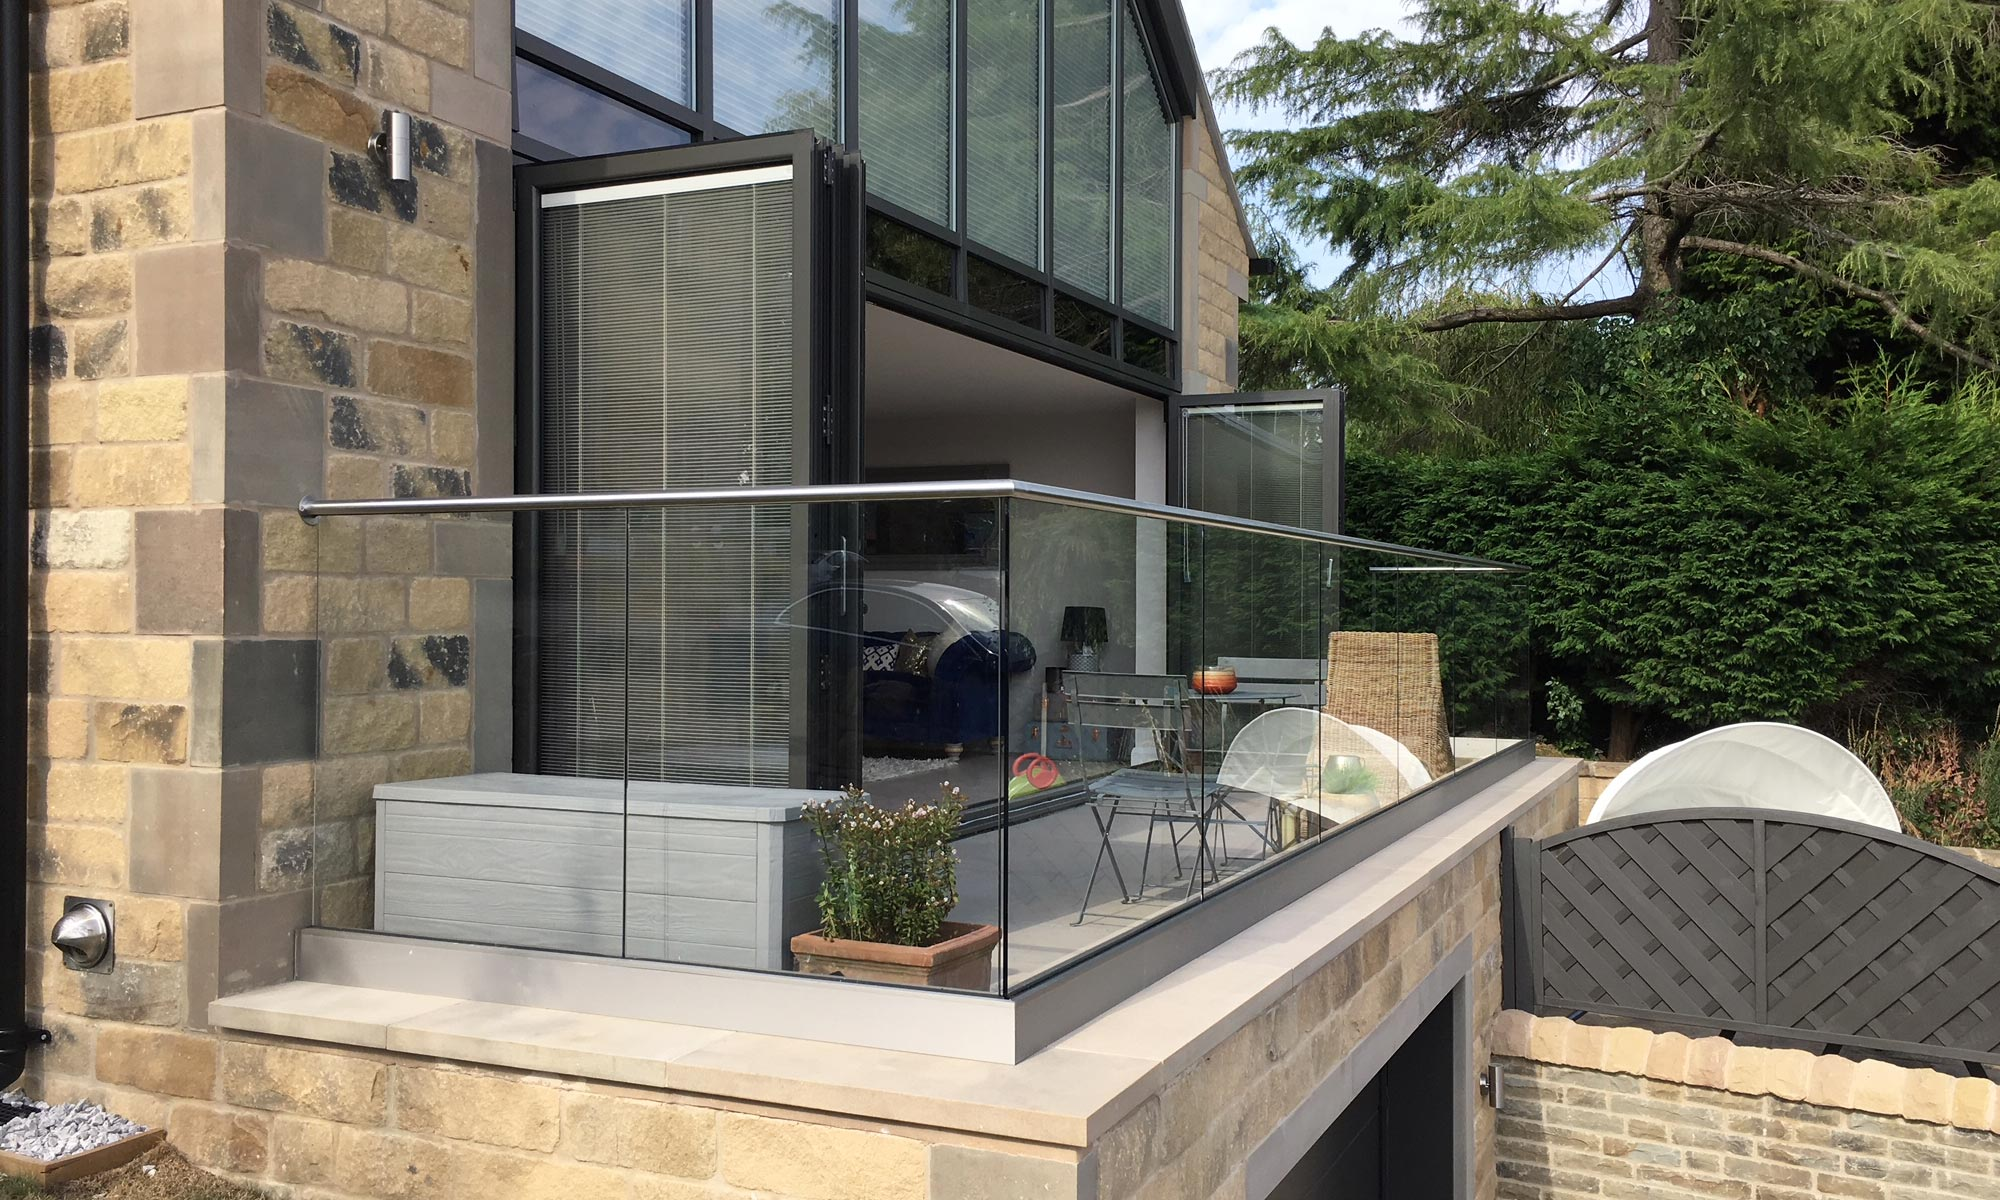 Balcony with stainless steel balustrade